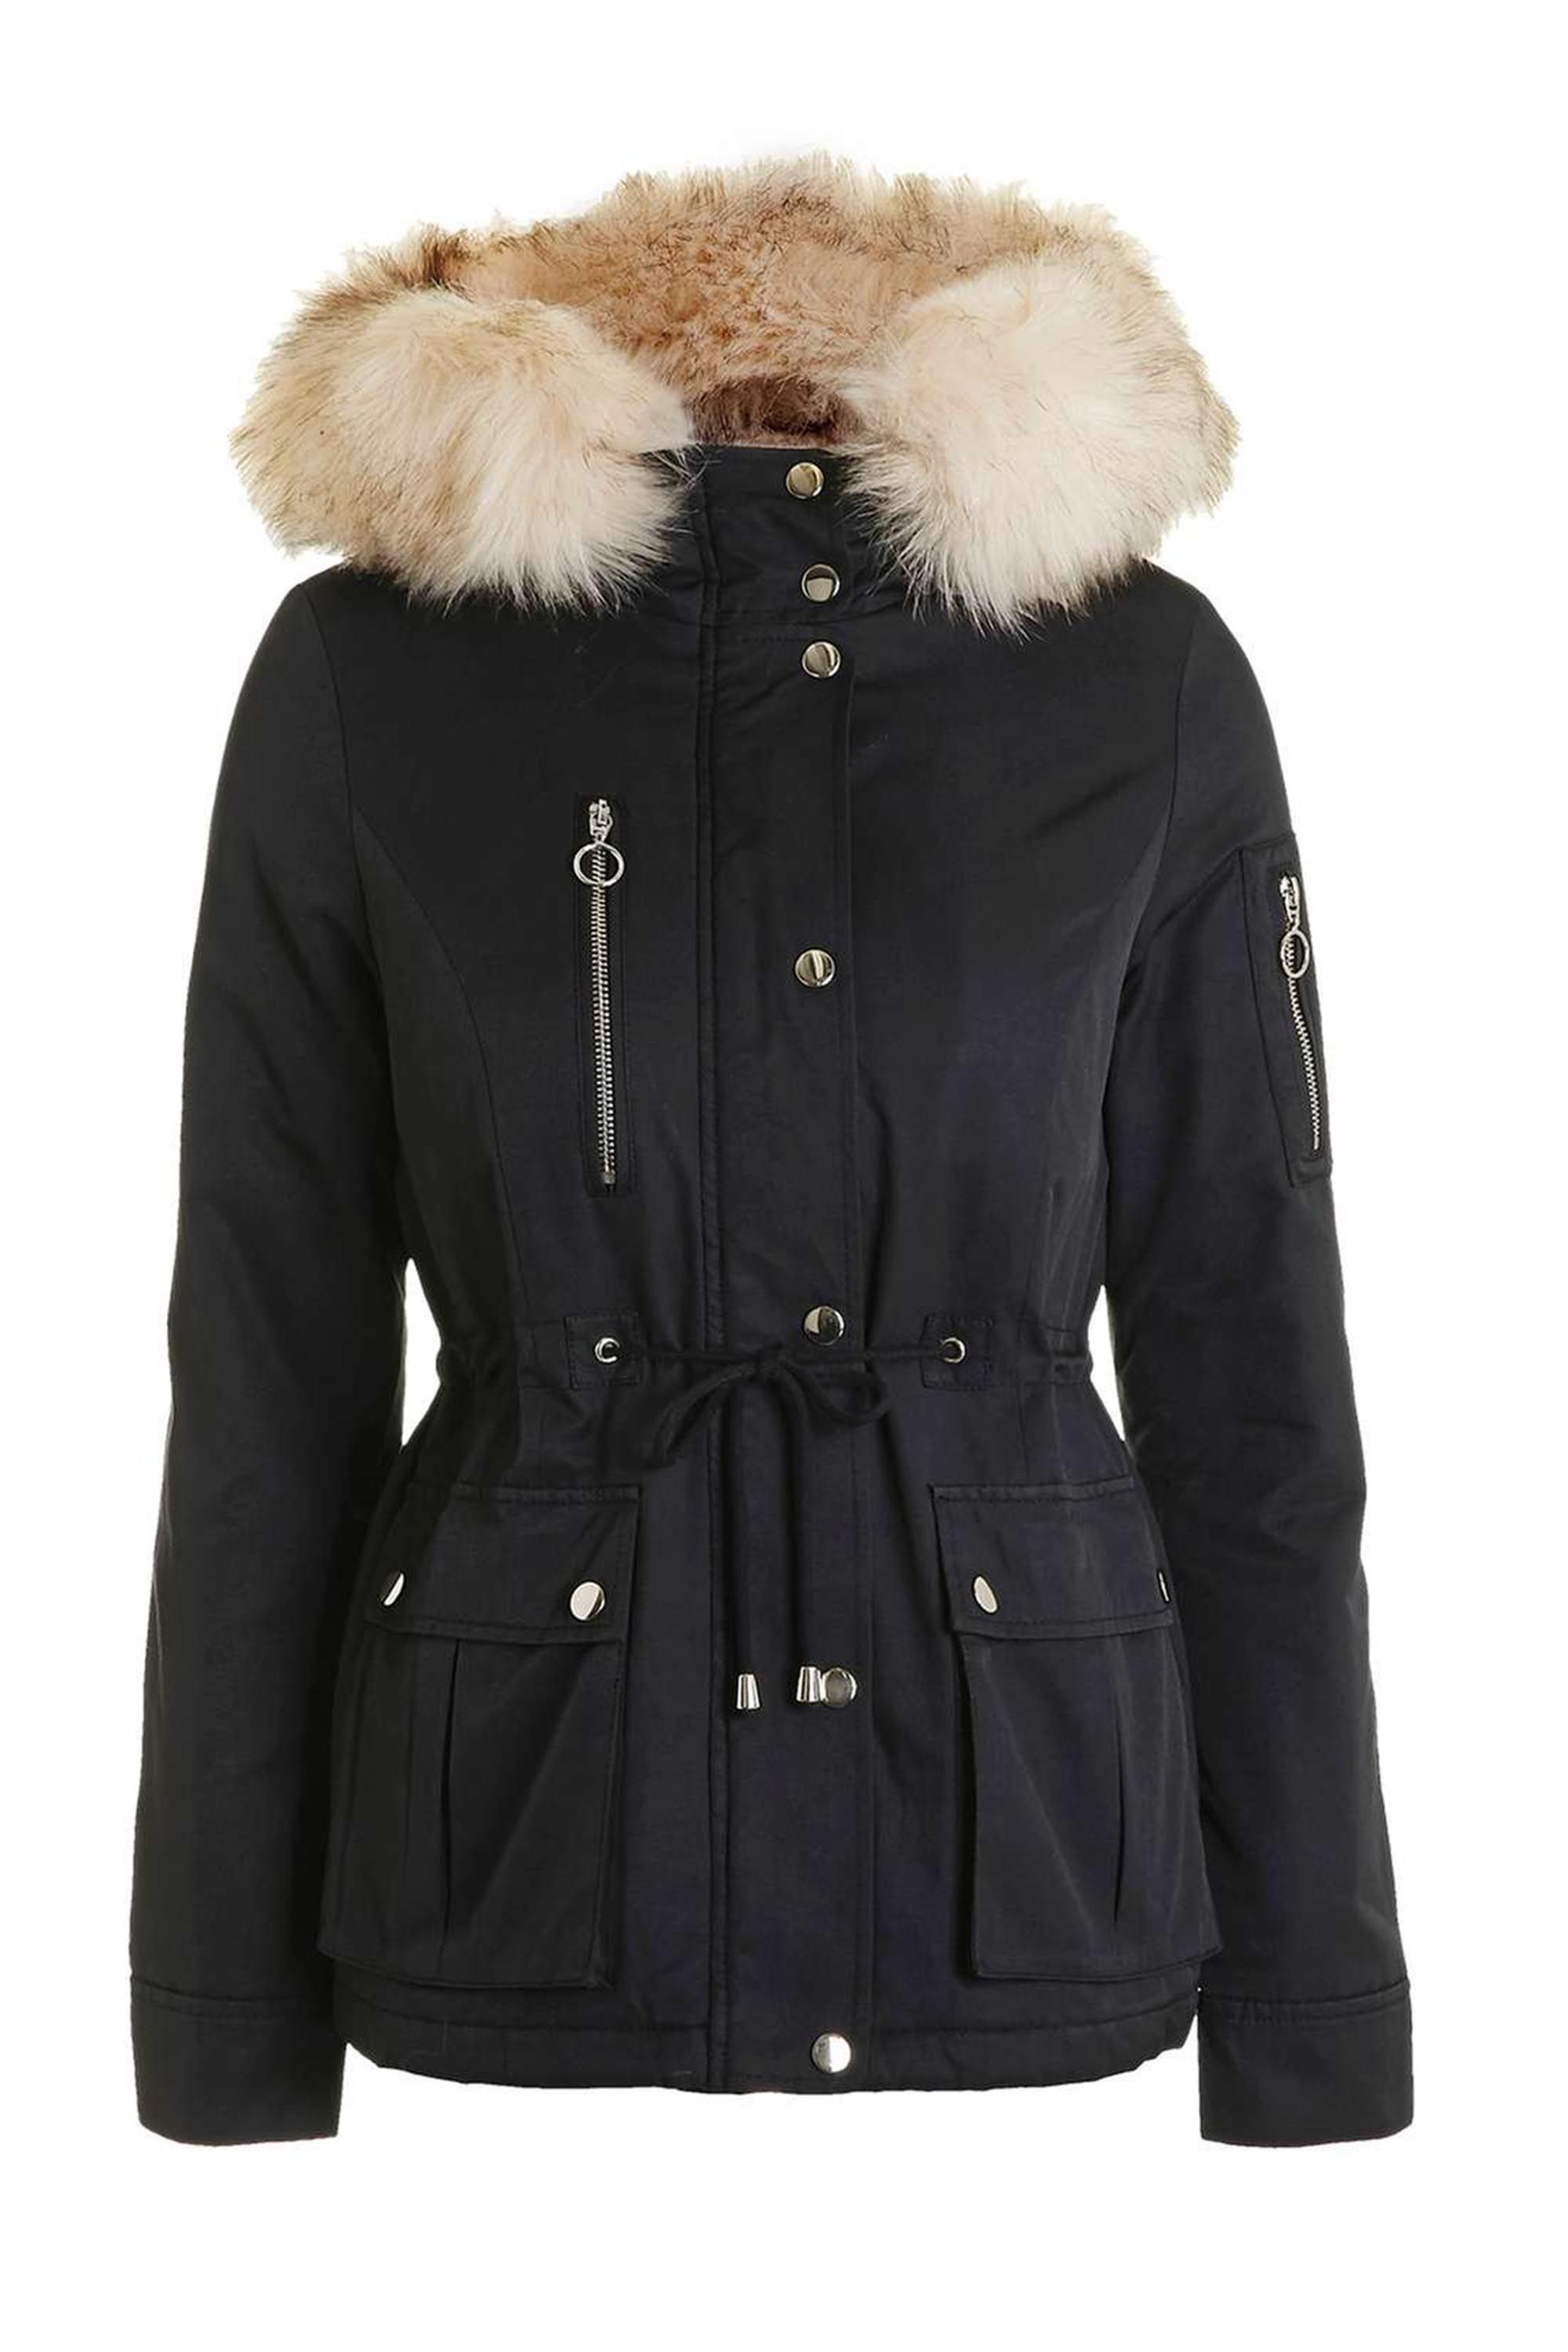 Best Parkas to Shop for Winter 2016 - Best Winter Coats